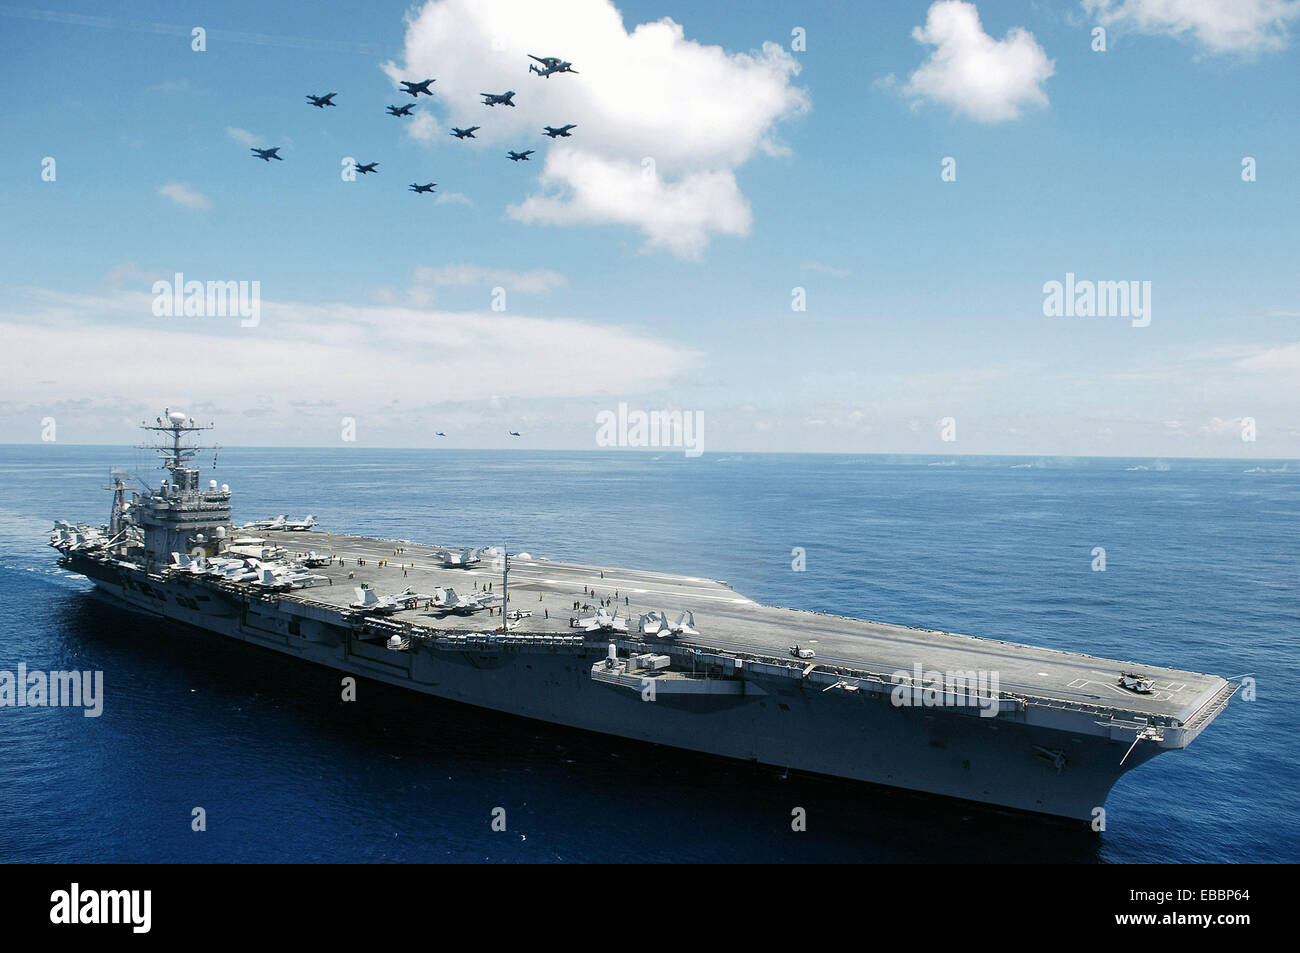 South China Sea (8 May, 2006) - The Nimitz Class Carrier USS Abraham Lincoln (CVN 72), and aircraft from Carrier - Stock Image